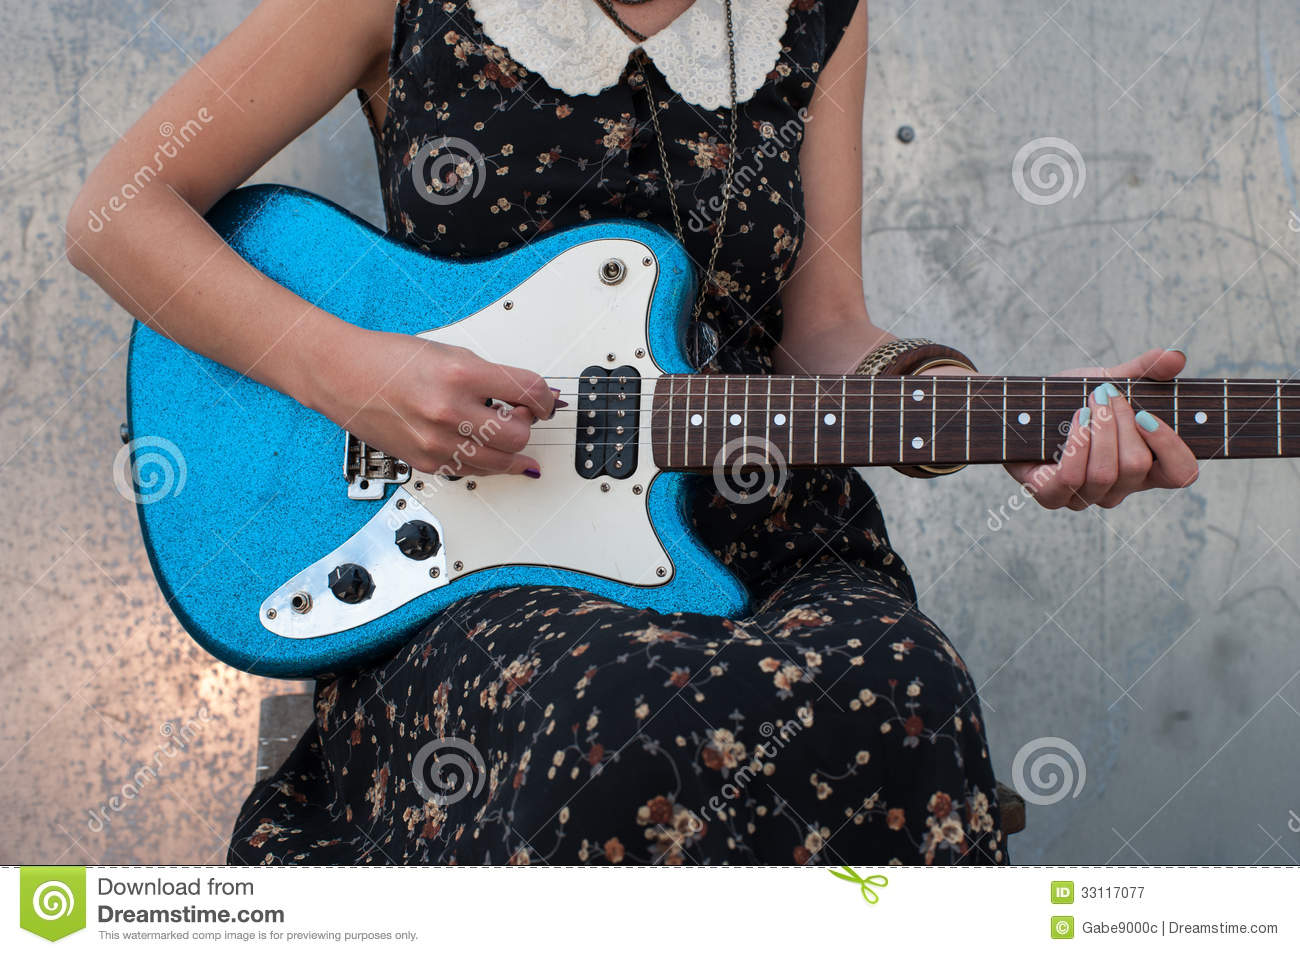 playing electric guitar stock image image of cute vintage 33117077. Black Bedroom Furniture Sets. Home Design Ideas